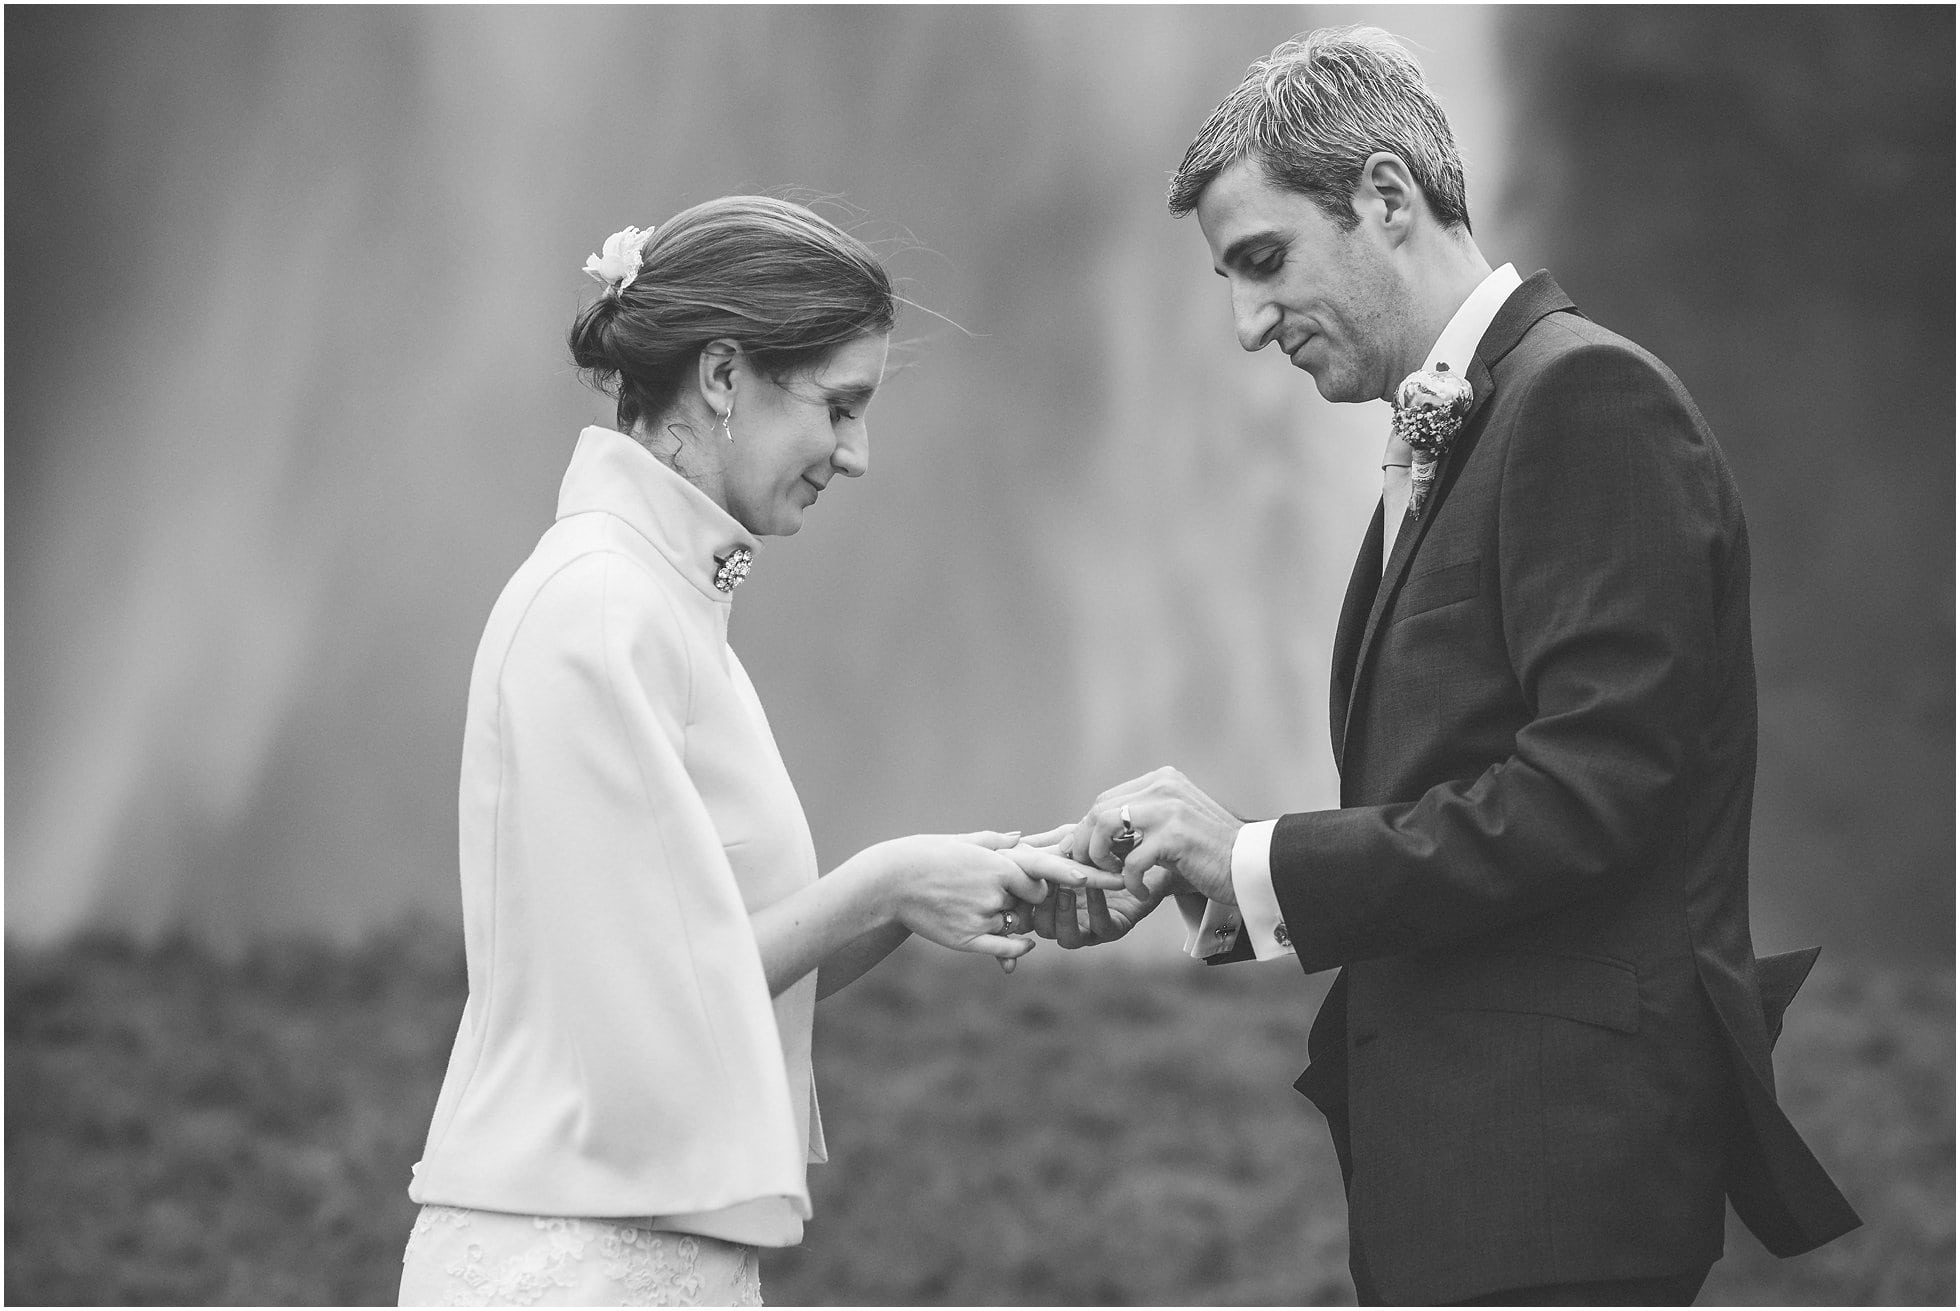 Exchanging of rings in front of Seljalandsfoss